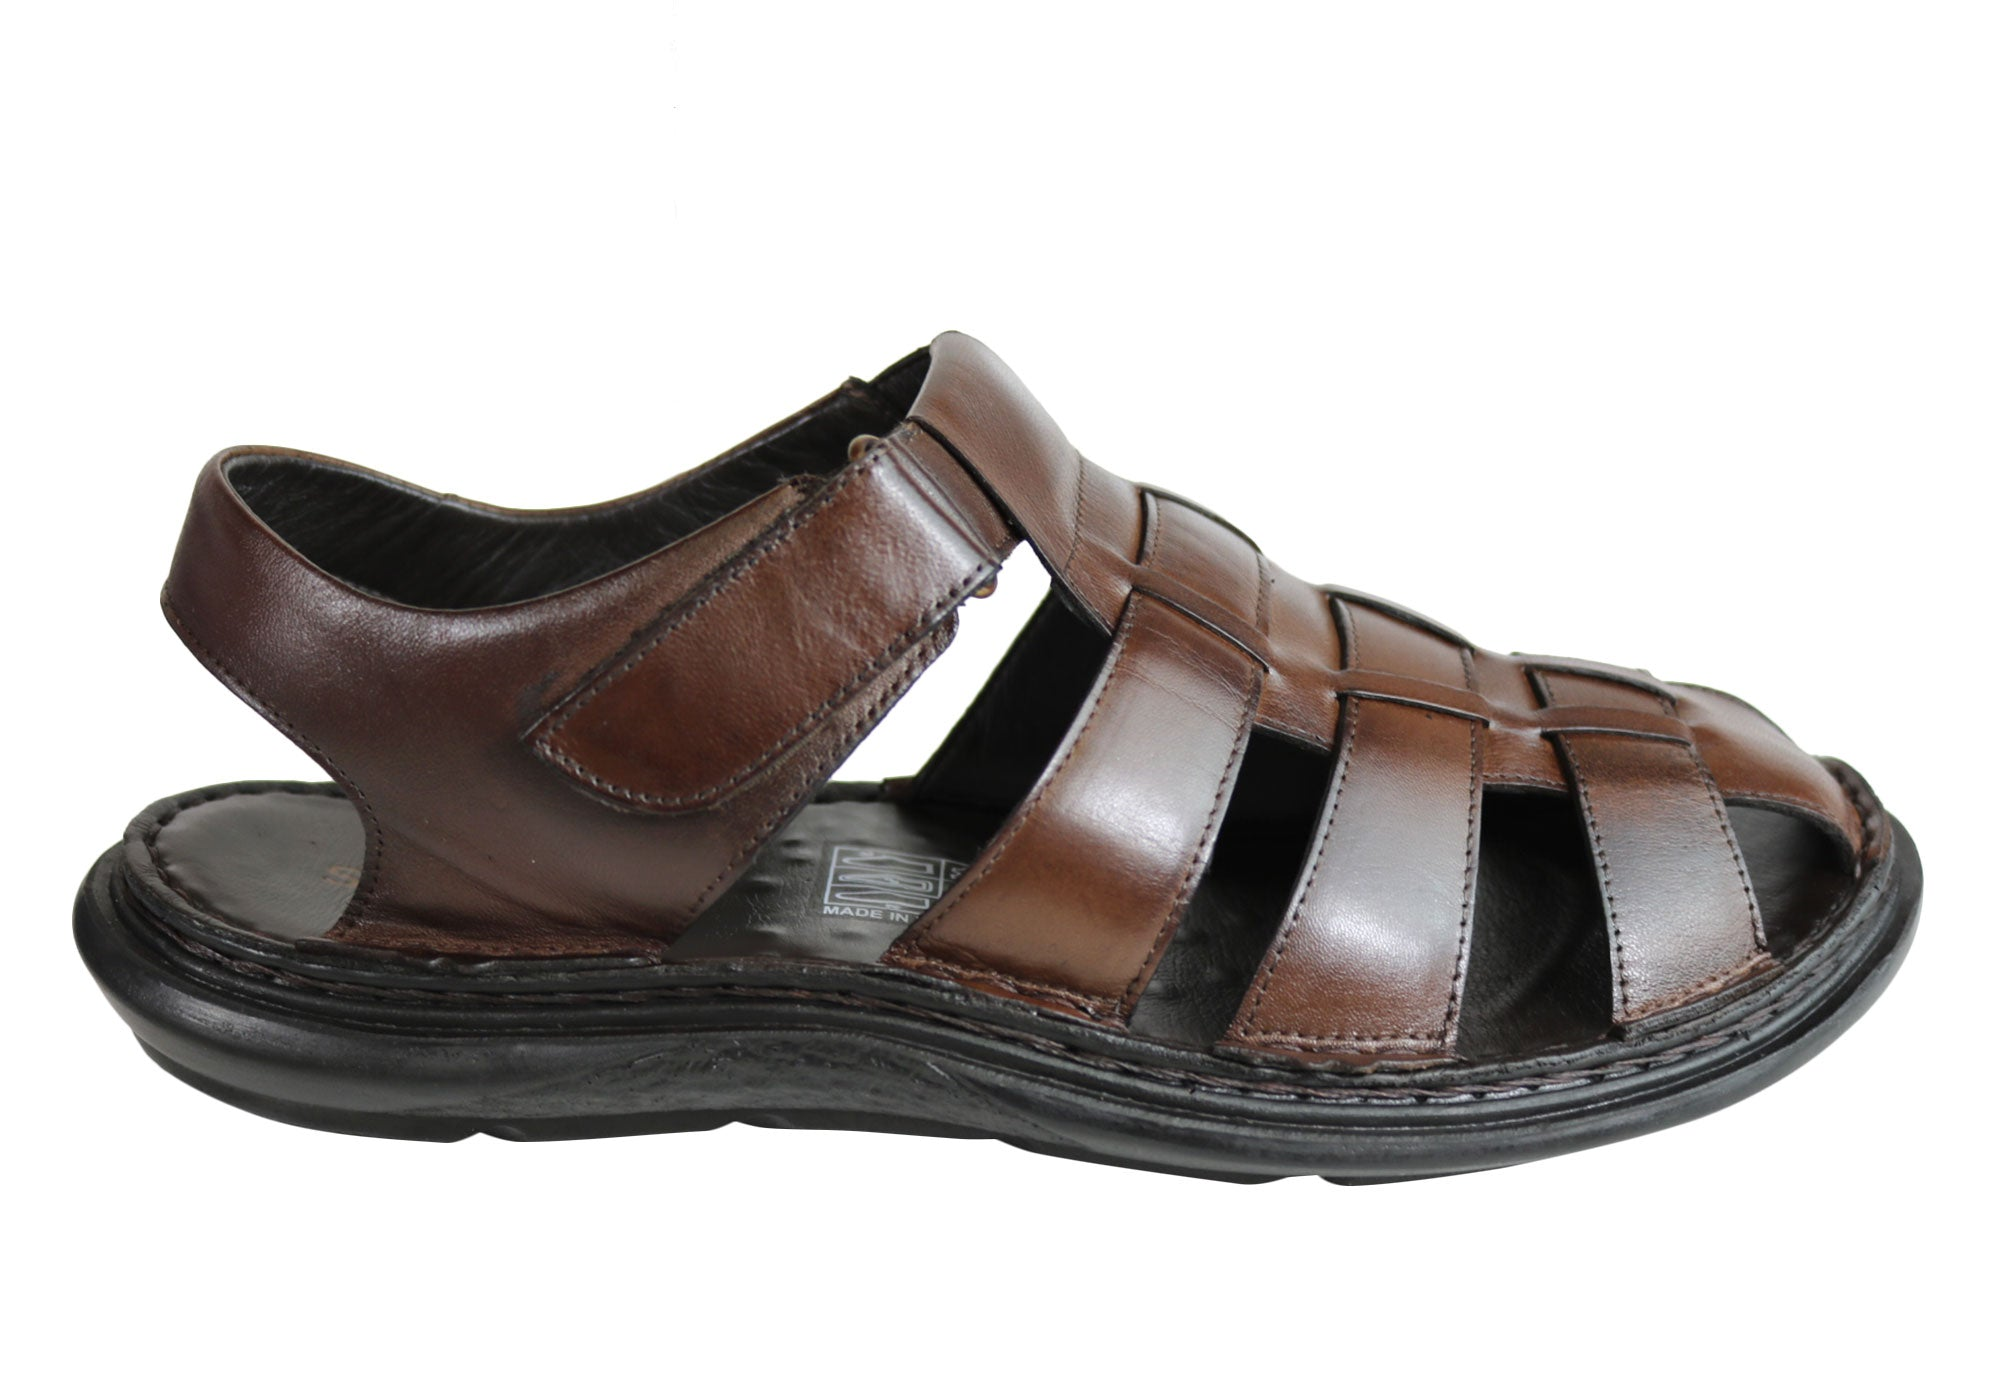 badb787f0fc7 Home Savelli Christopher Mens Leather Closed Toe Sandals Made In Brazil.  Coffee ...